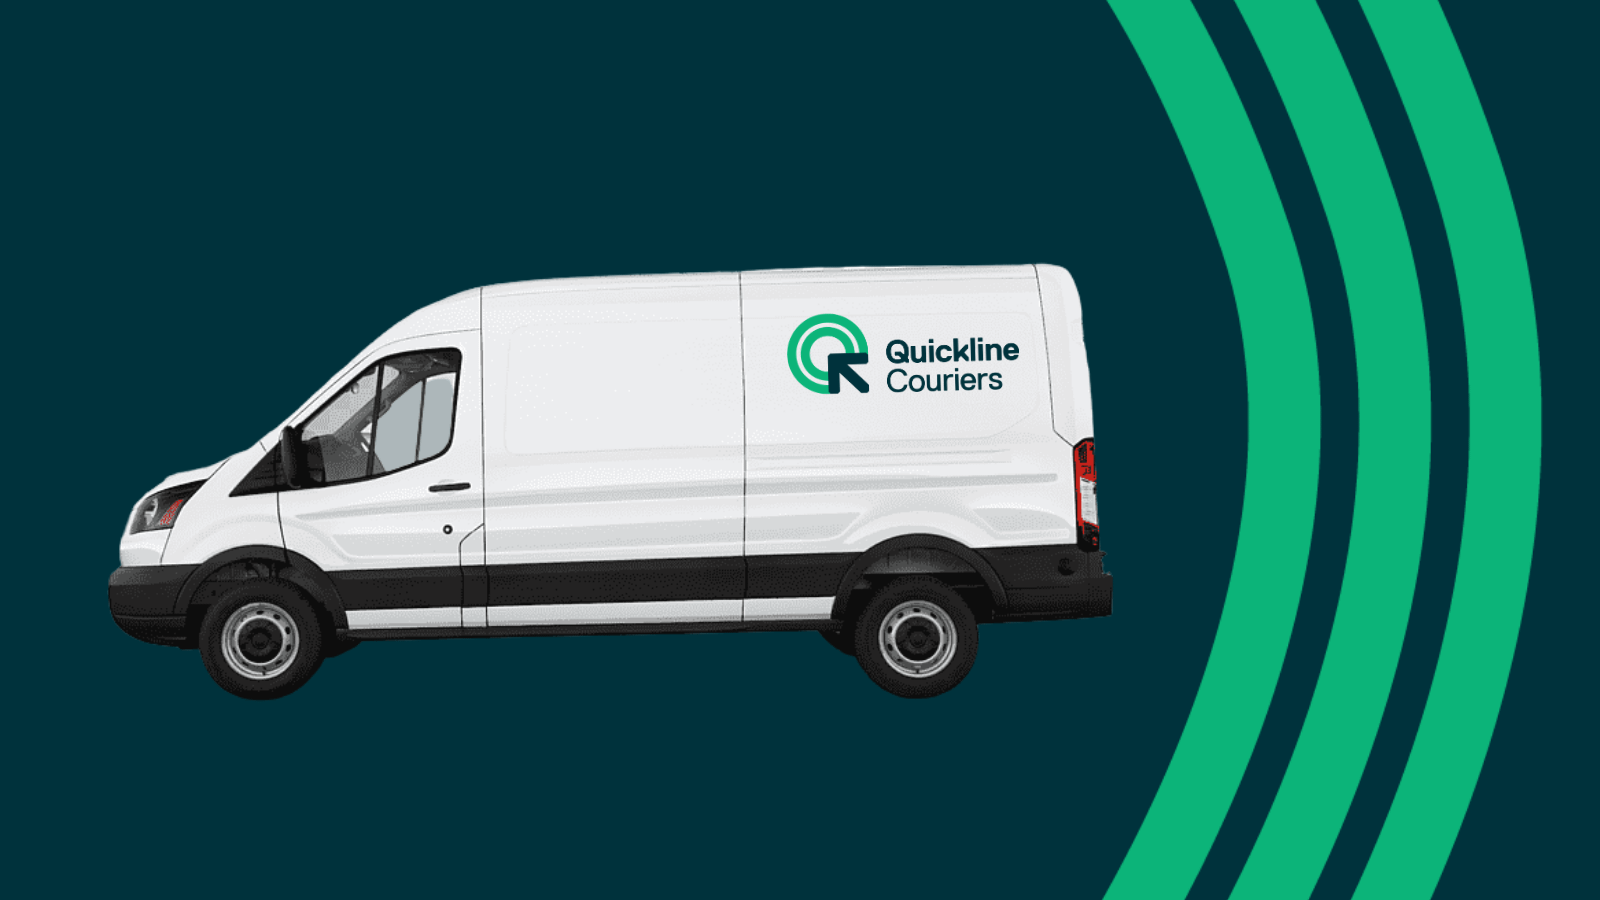 quickline couriers